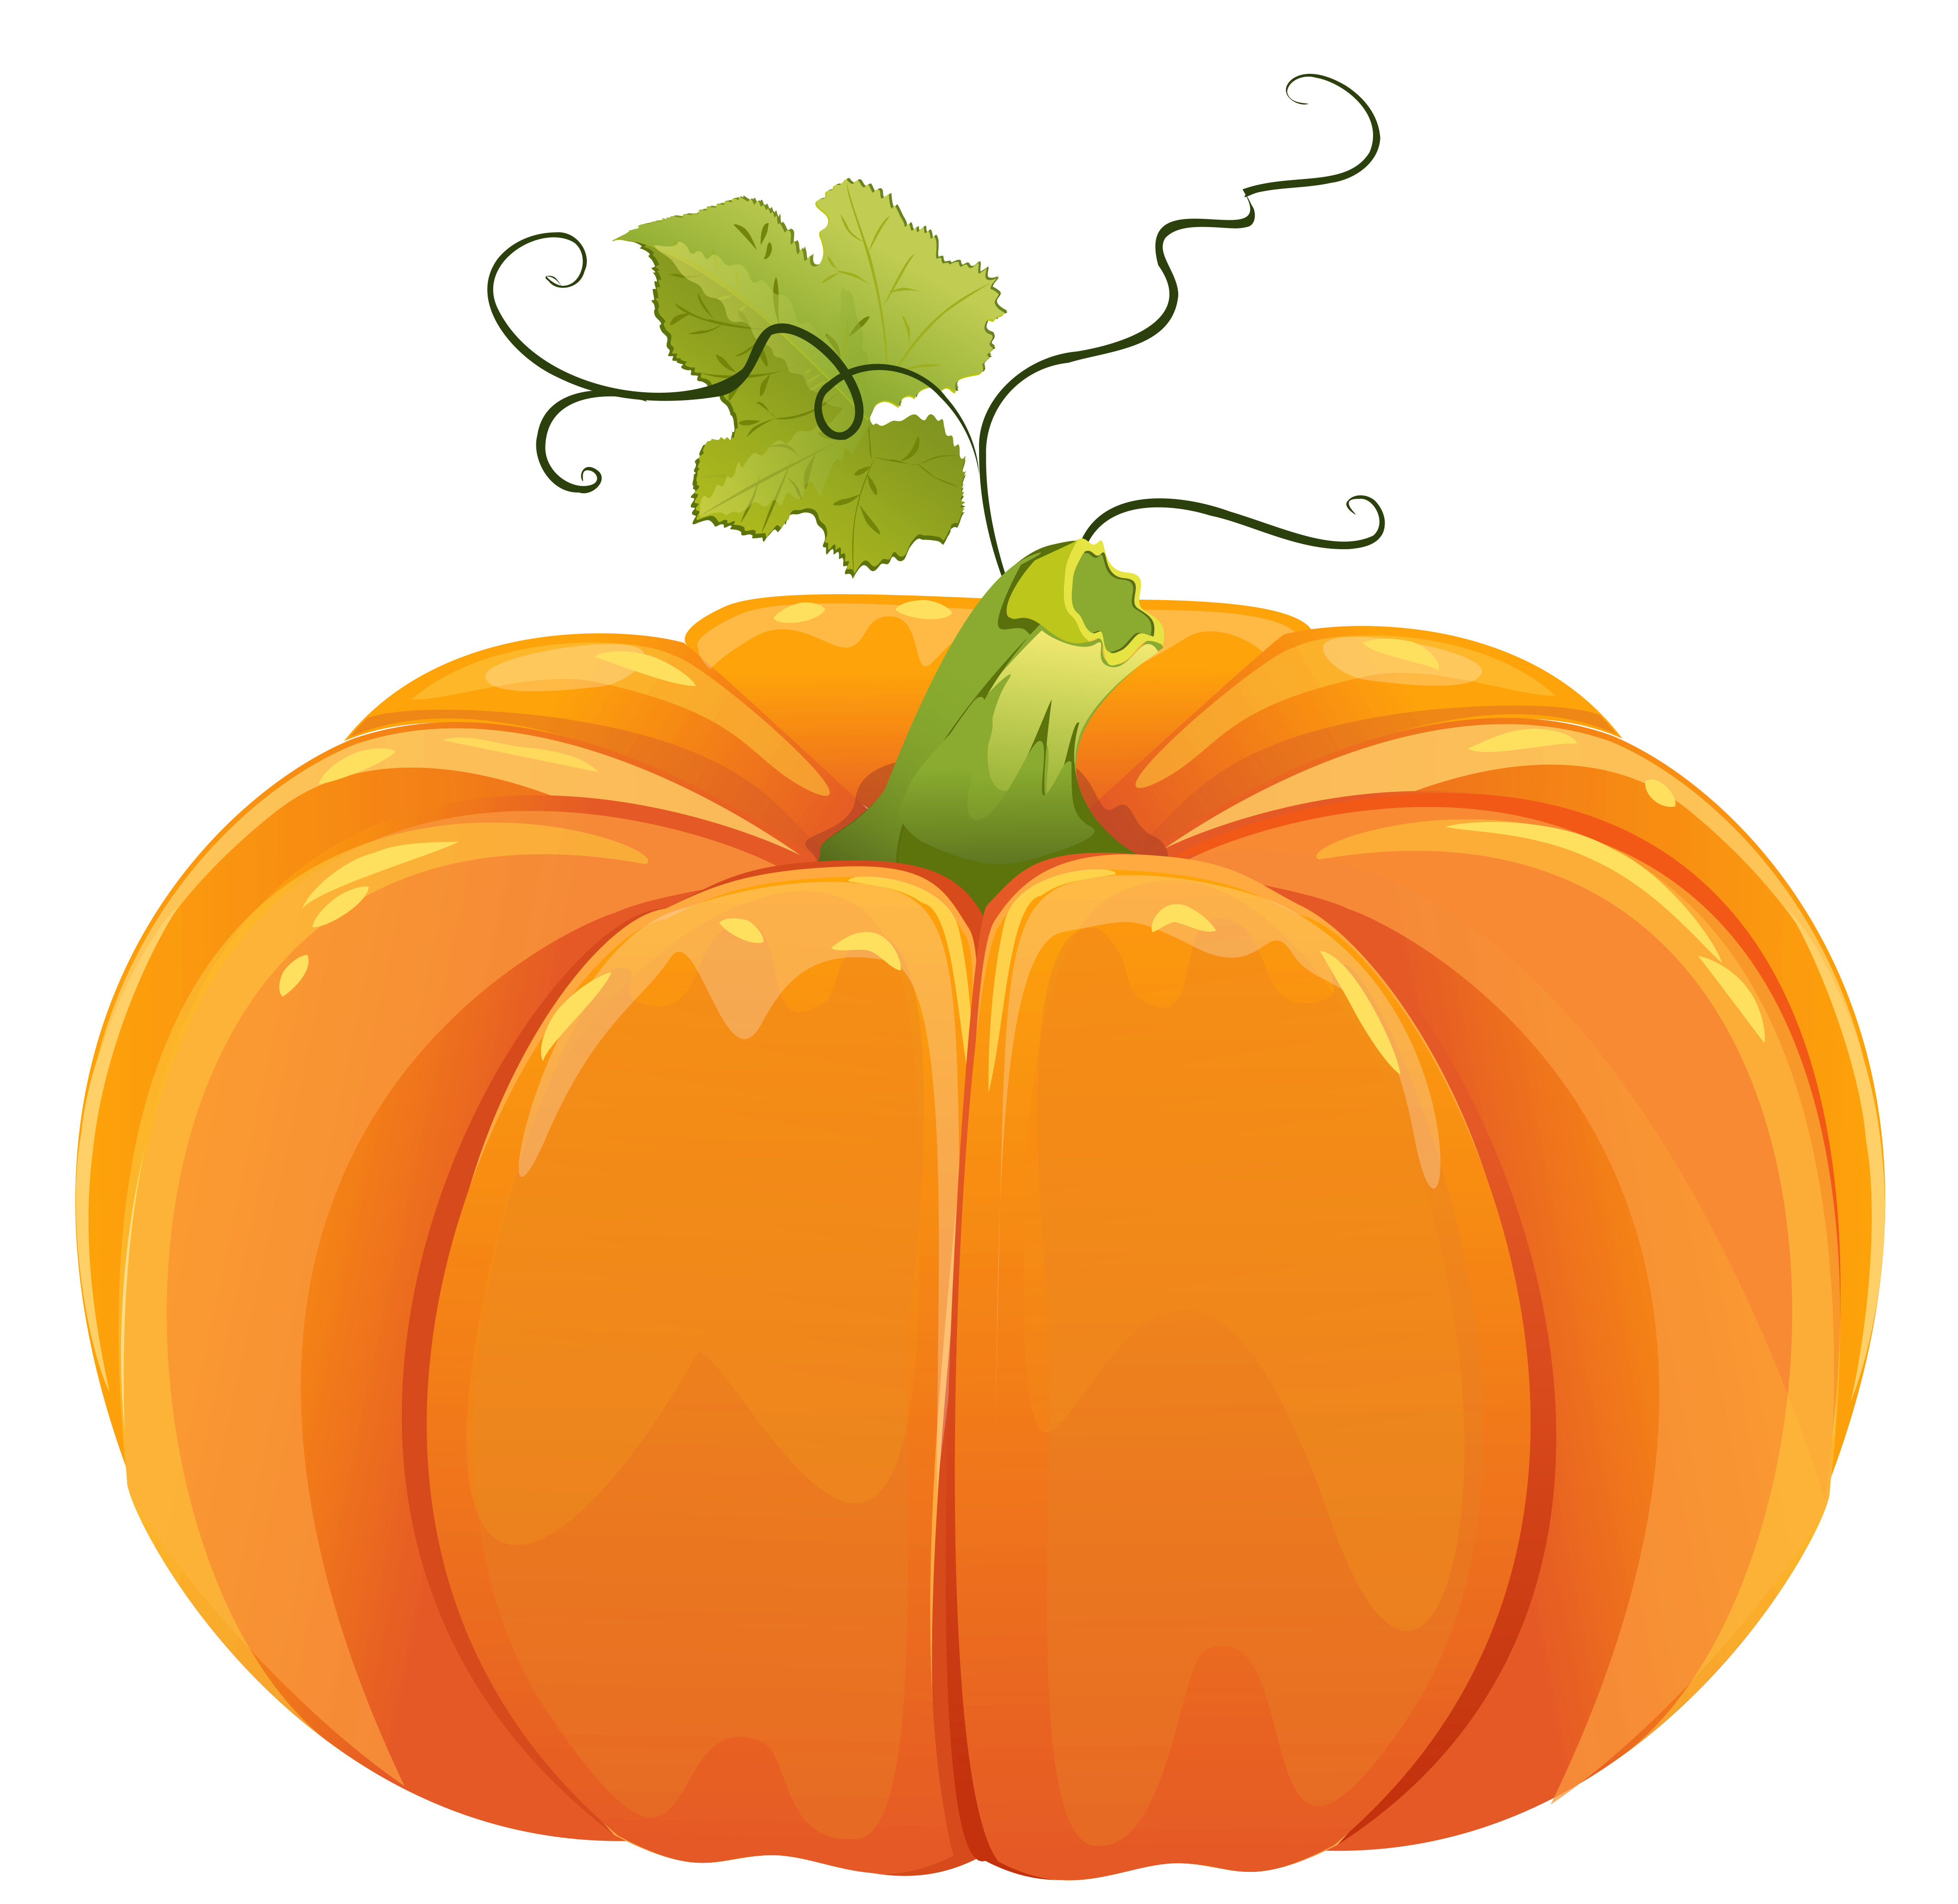 With pumpkin clipart Clipground